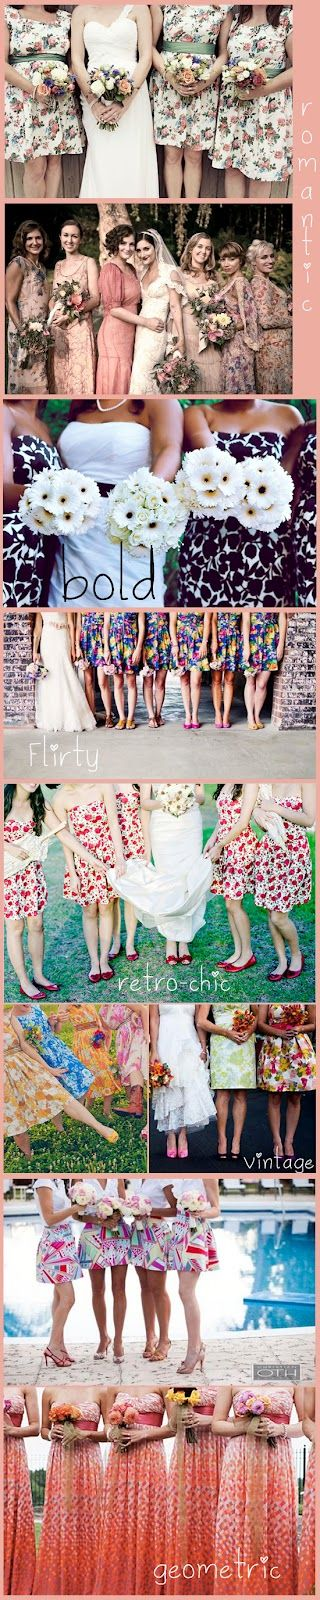 I'm grateful for this reminder of having patterned (or, just a classy kind of different) bridesmaid dresses. (Inspiring.)